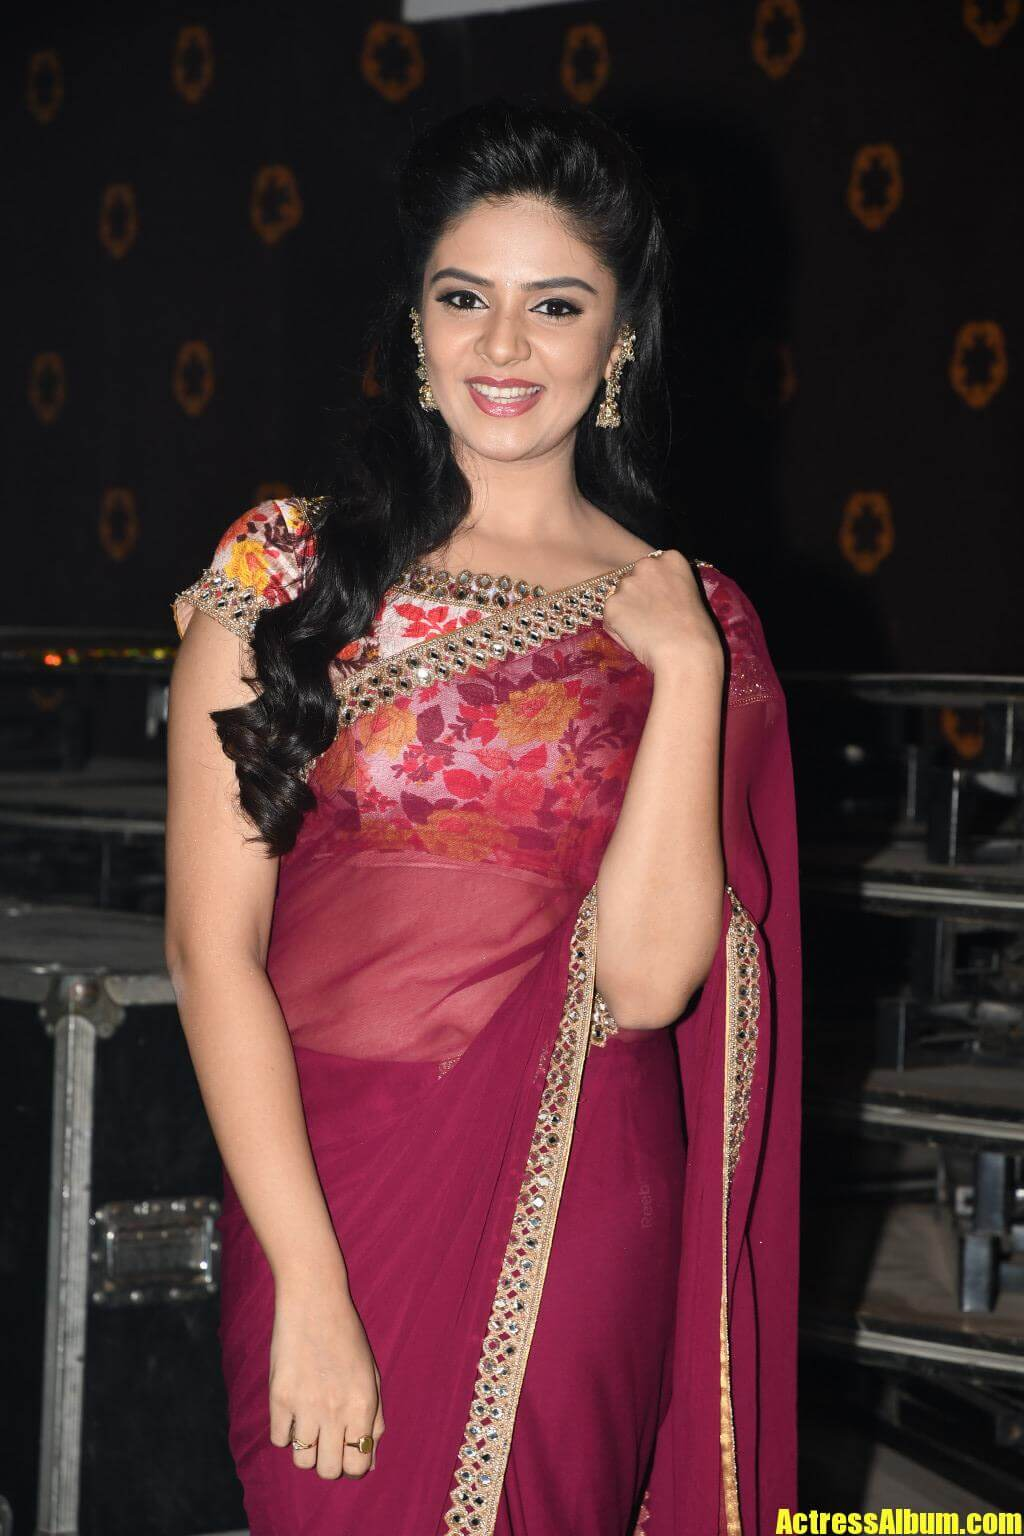 Sri Mukhi At Pelli Chupoolu Audio Launch - Actress Album-2496